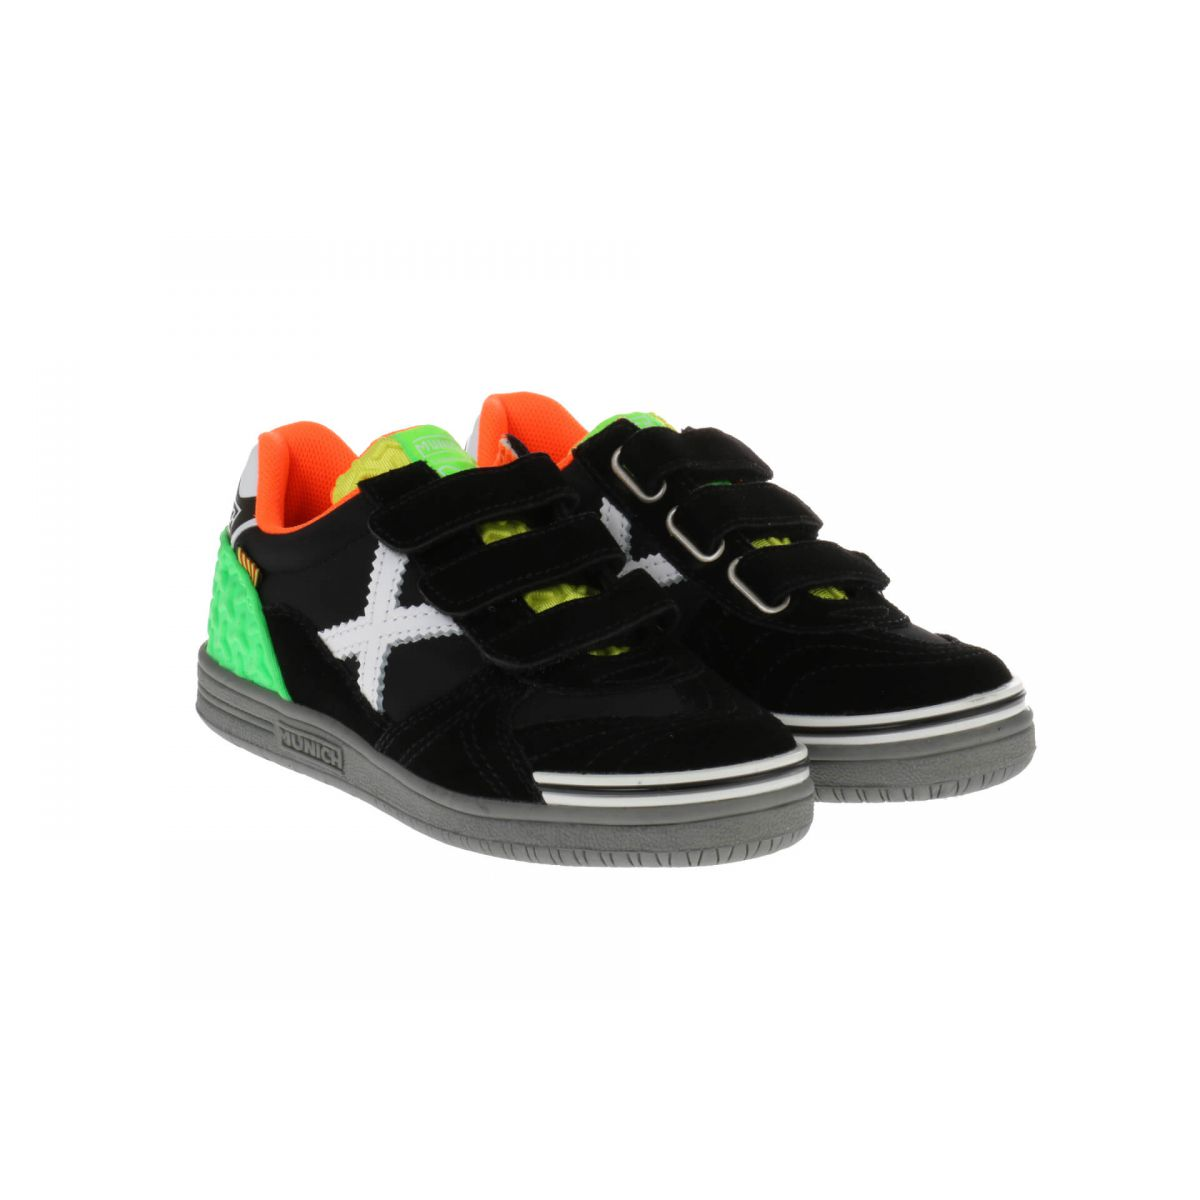 Munich 1514 051 Black Fluor Green